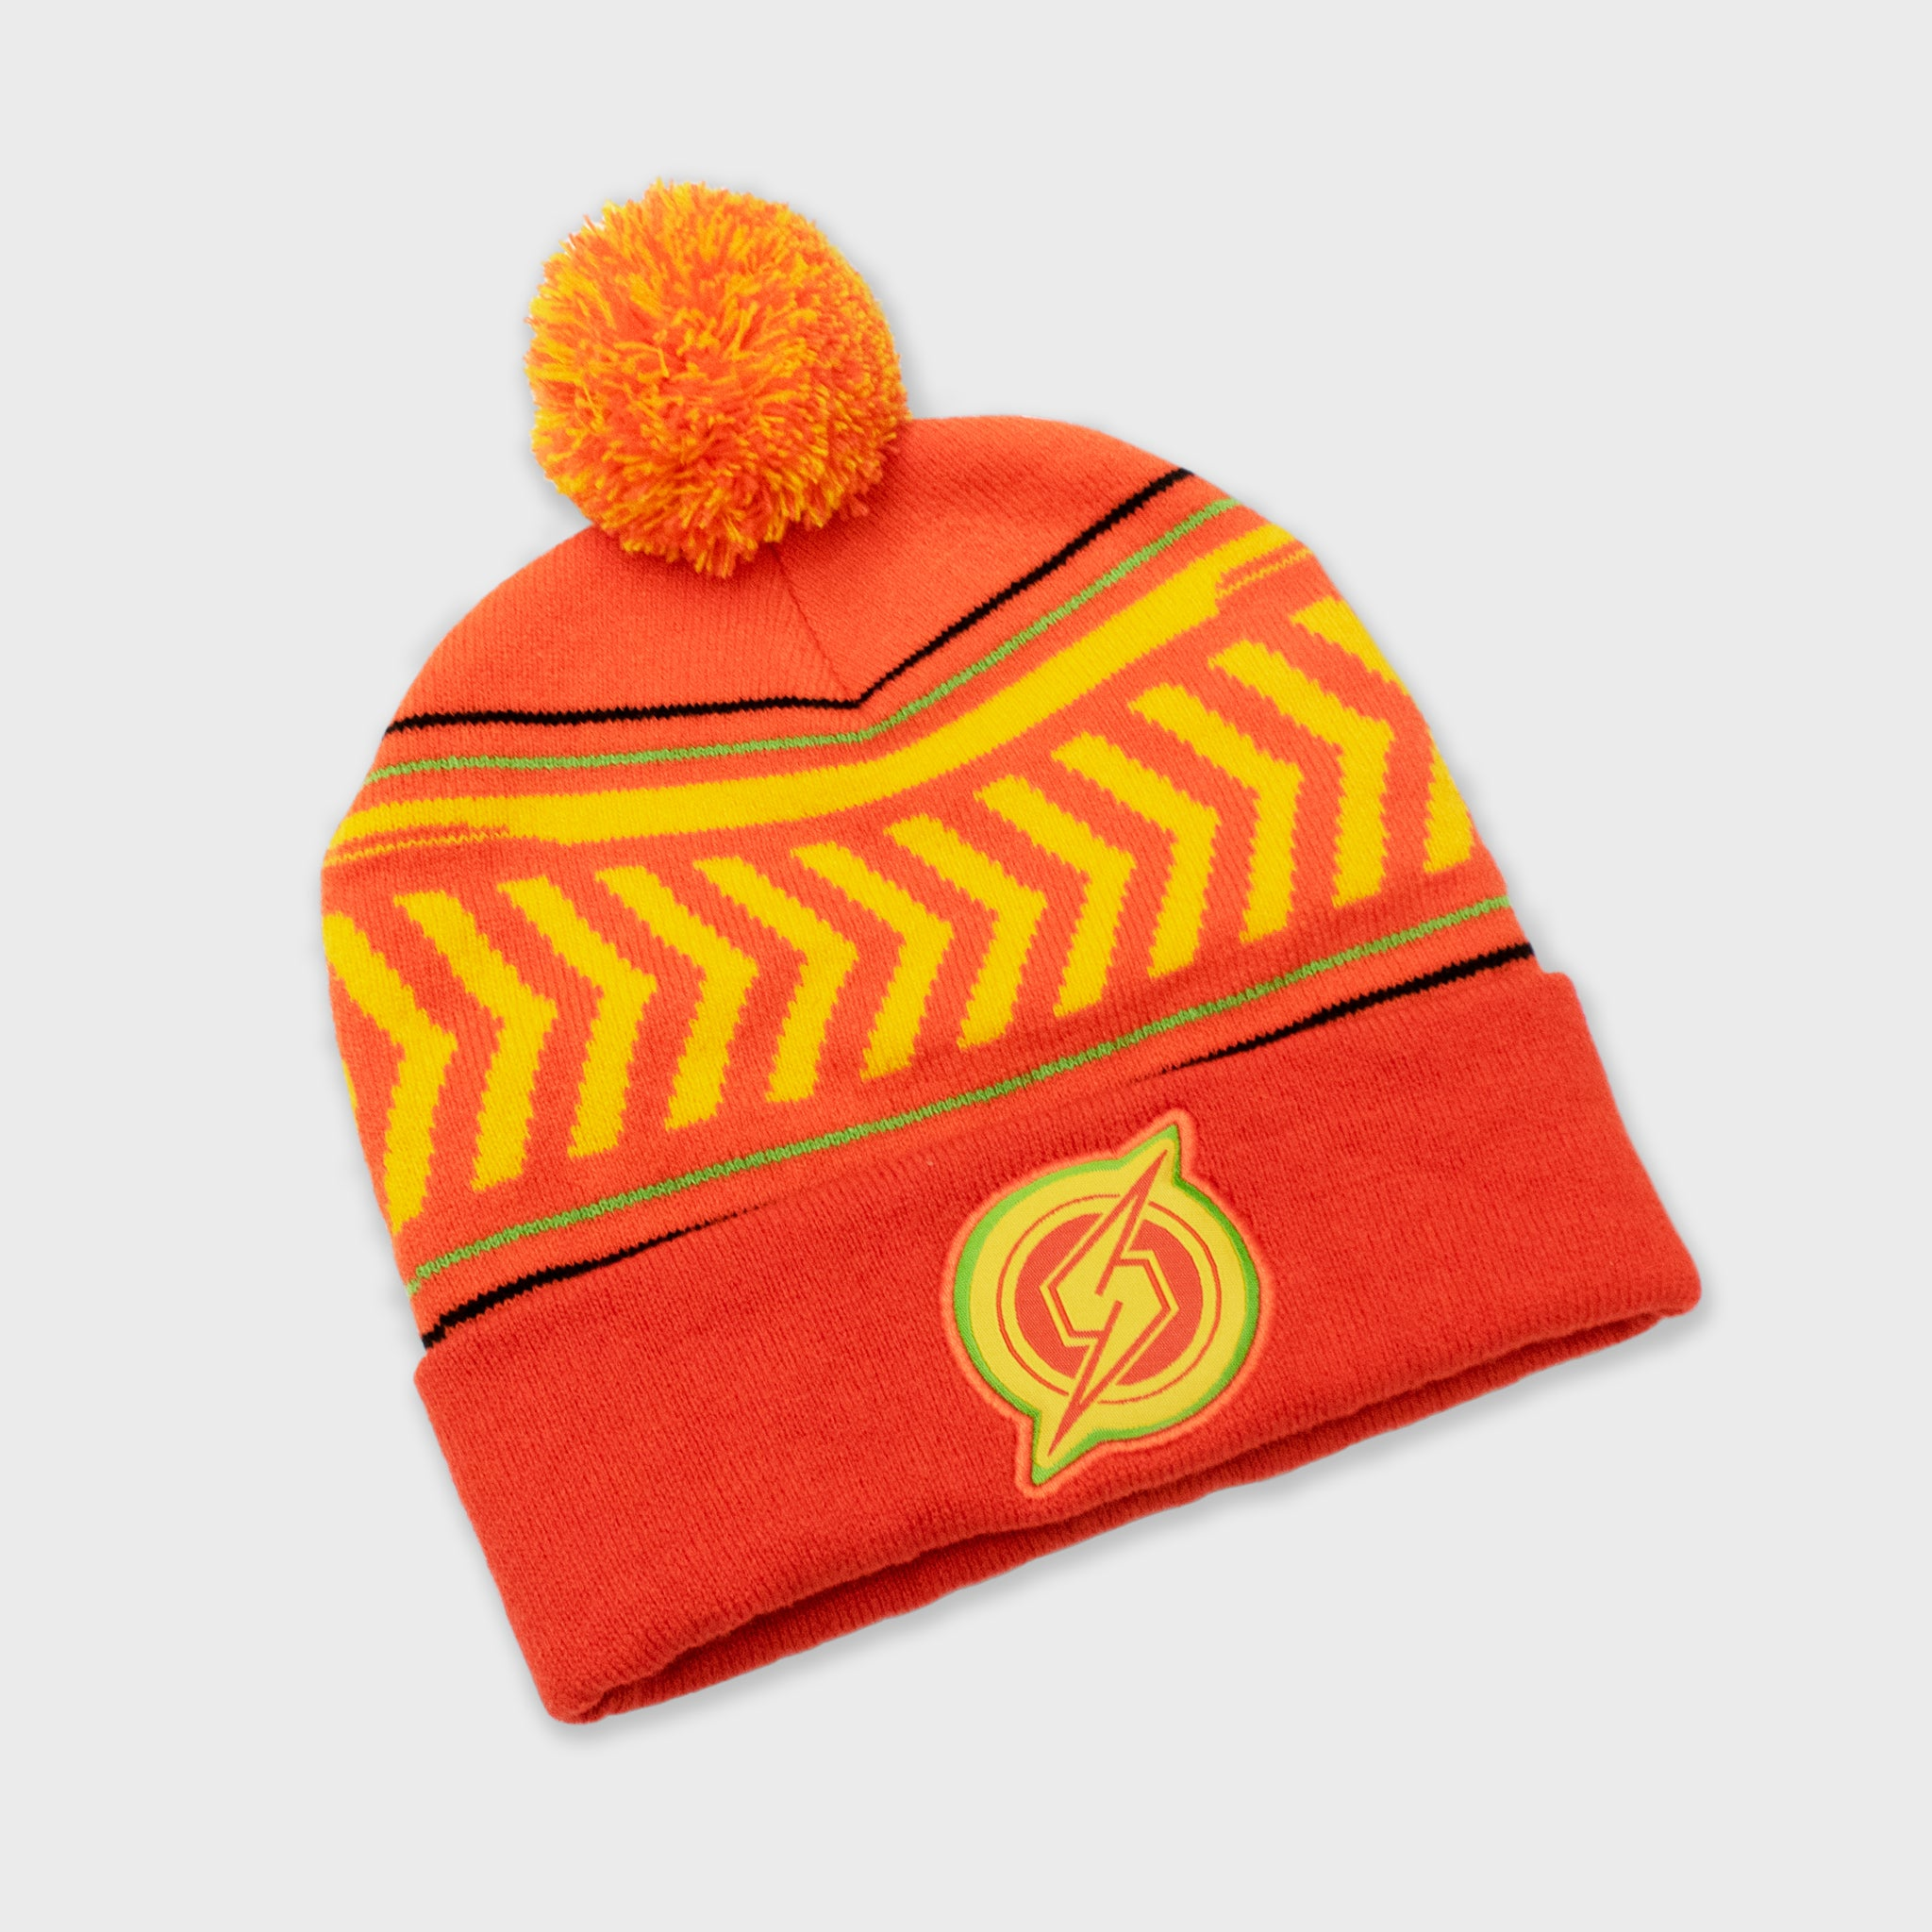 metroid samus aran nintendo video games collectibles exclusive gamestop retail box accessories culturefly beanie hat headwear